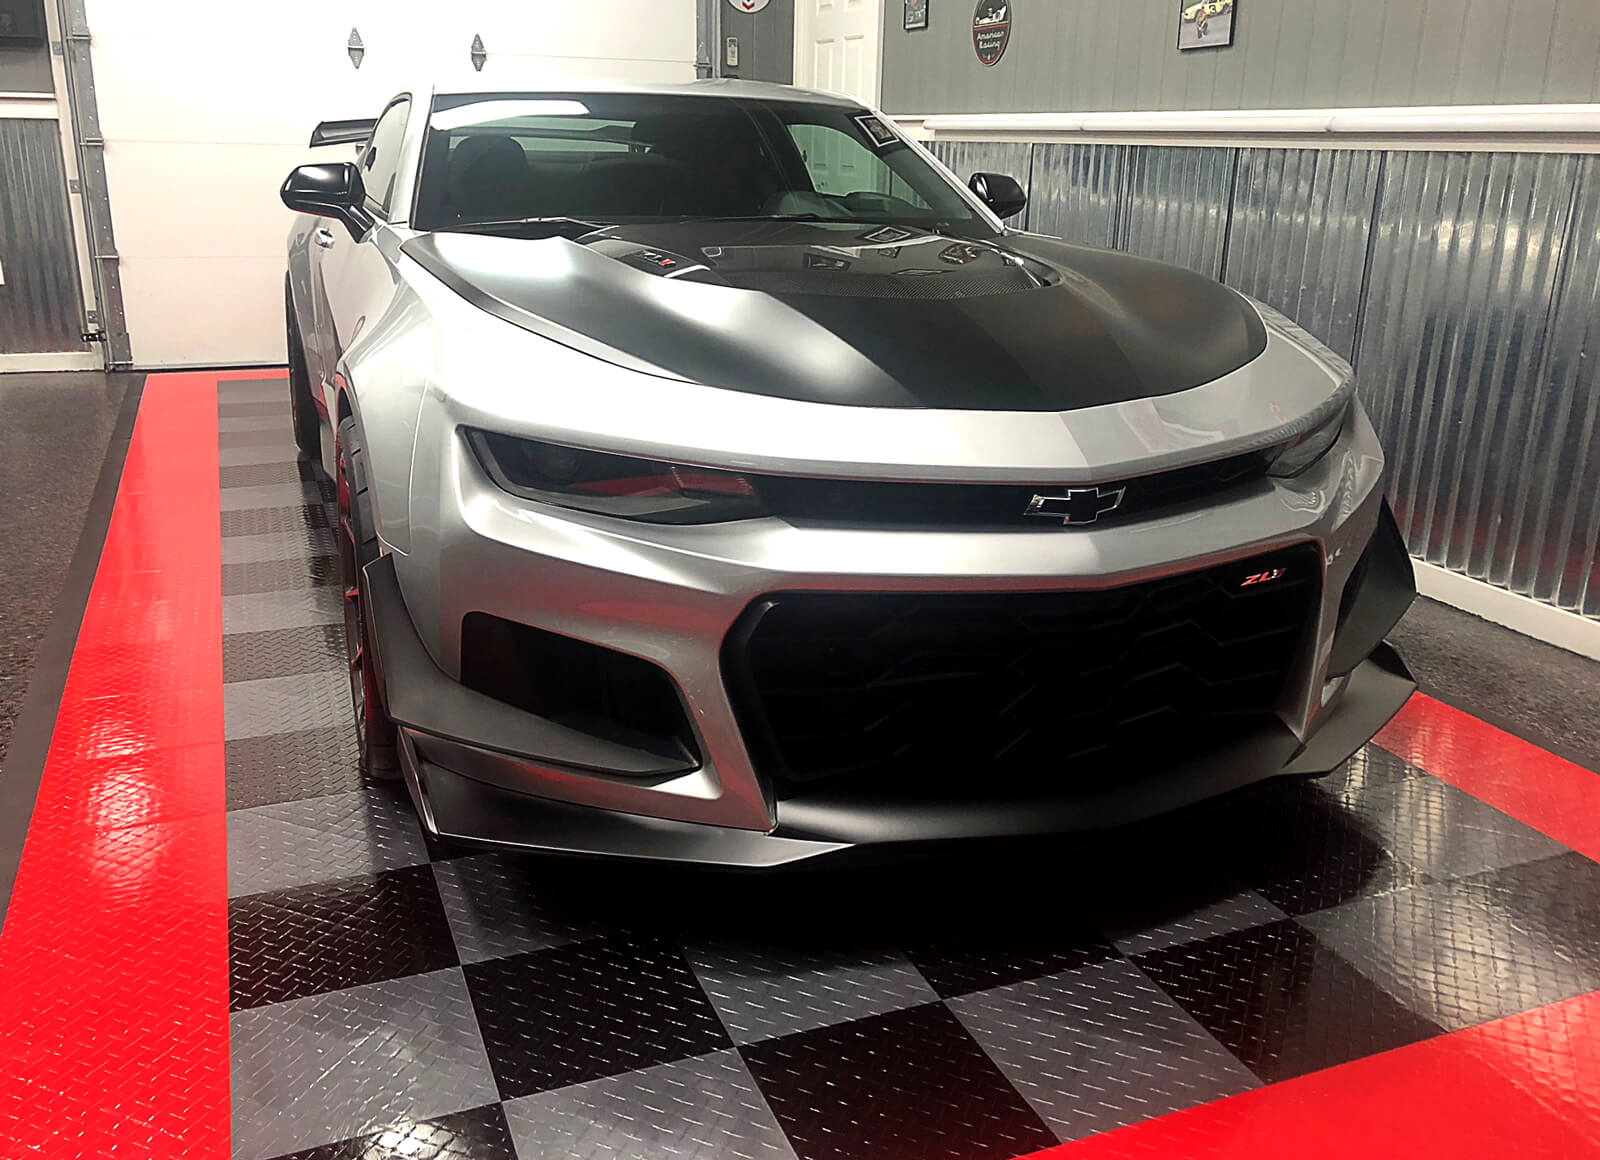 Chevy Camaro ZL1 on a TuffShield Diamond alloy, black, and red parking pad with edging.